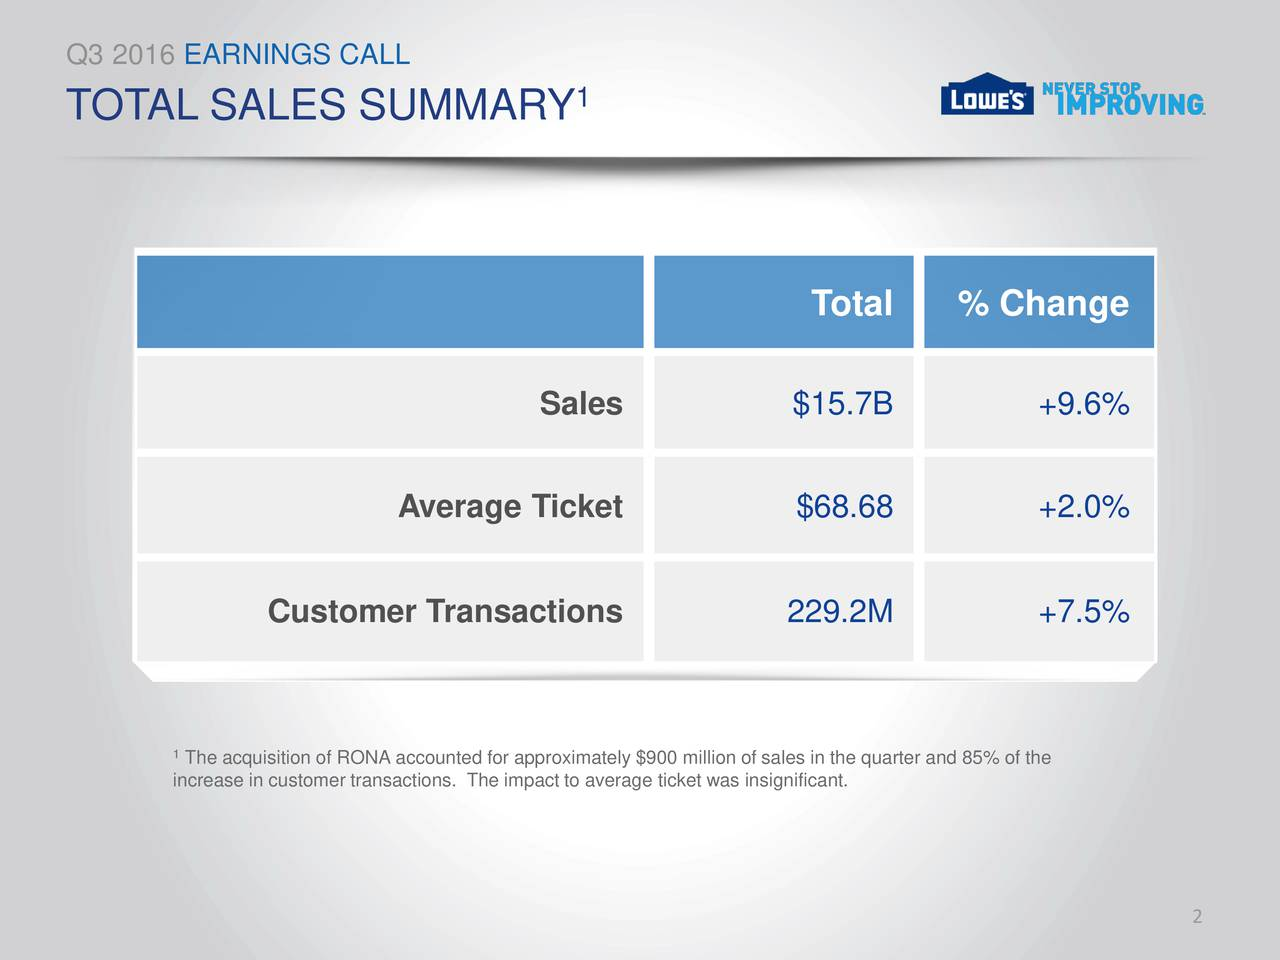 TOTAL SALES SUMMARY 1 Total % Change Sales $15.7B +9.6% Average Ticket $68.68 +2.0% Customer Transactions 229.2M +7.5% 1The acquisition of RONA accounted for approximately $900 million of sales in the quarter and 85% of the increase in customer transactions. The impact to average ticket was insignificant. 2